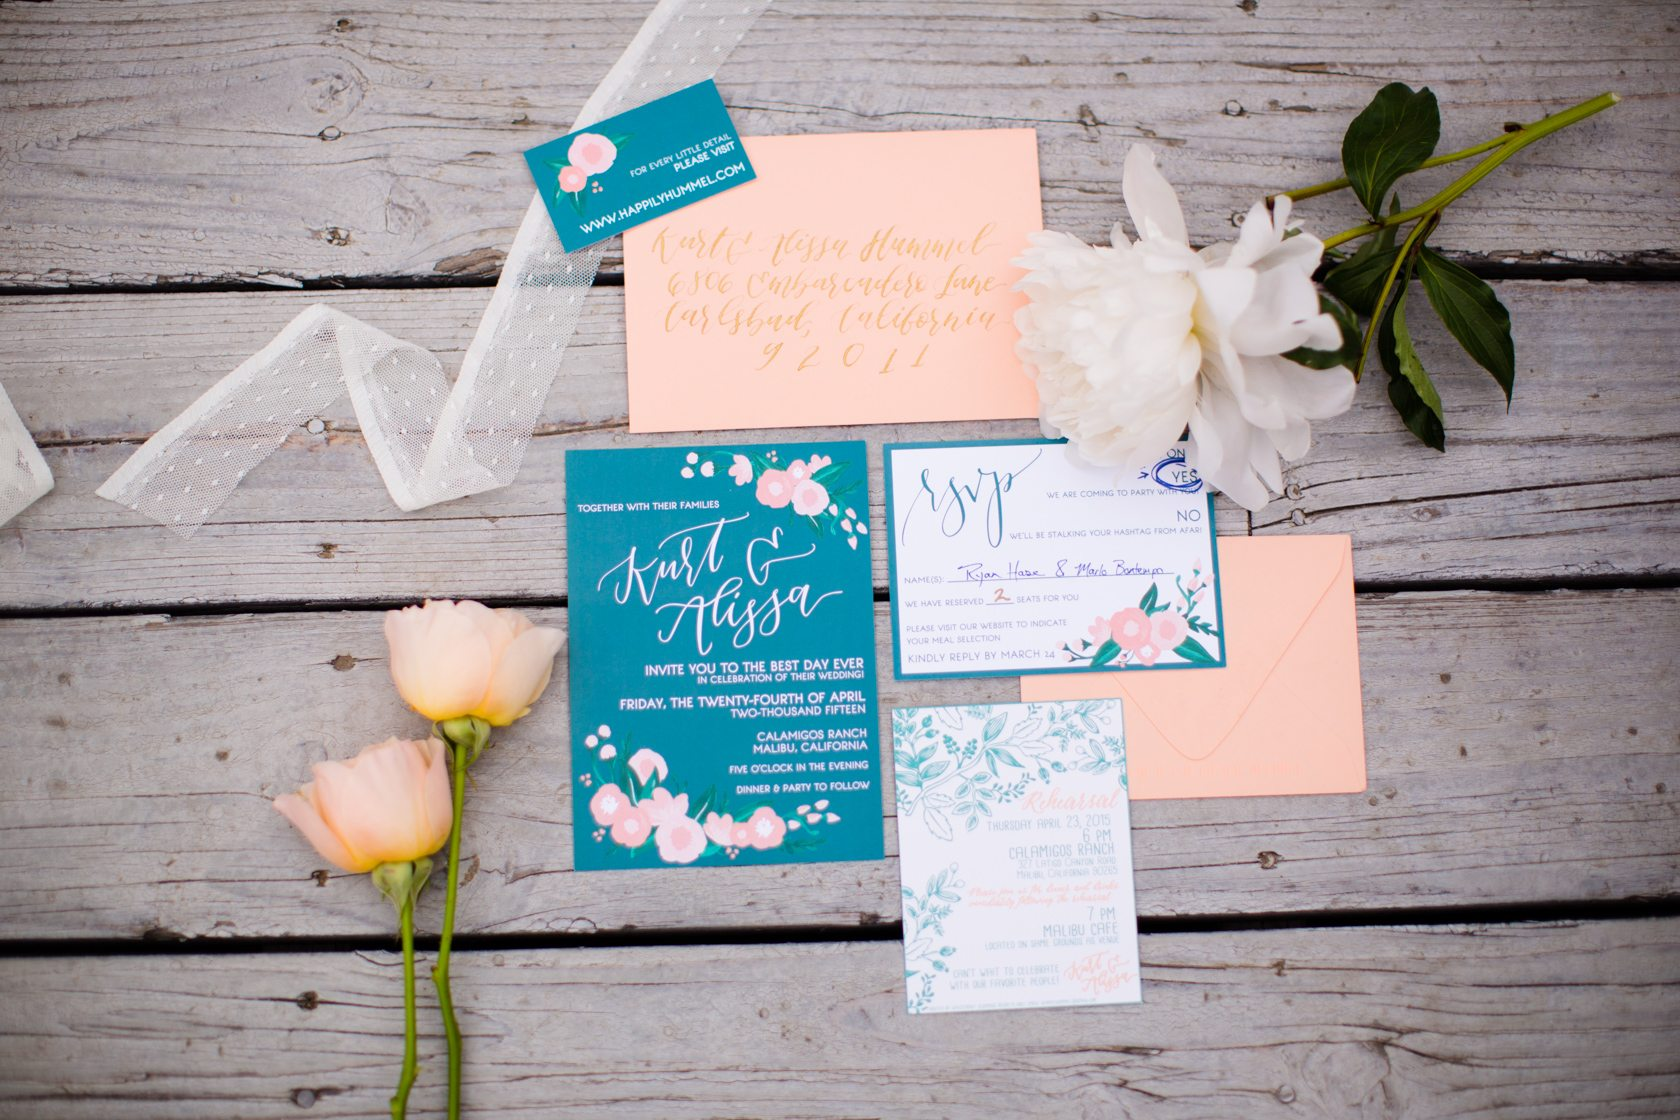 The_Printed_Palette_Wedding_at_Calamigos_Ranch_003.jpg